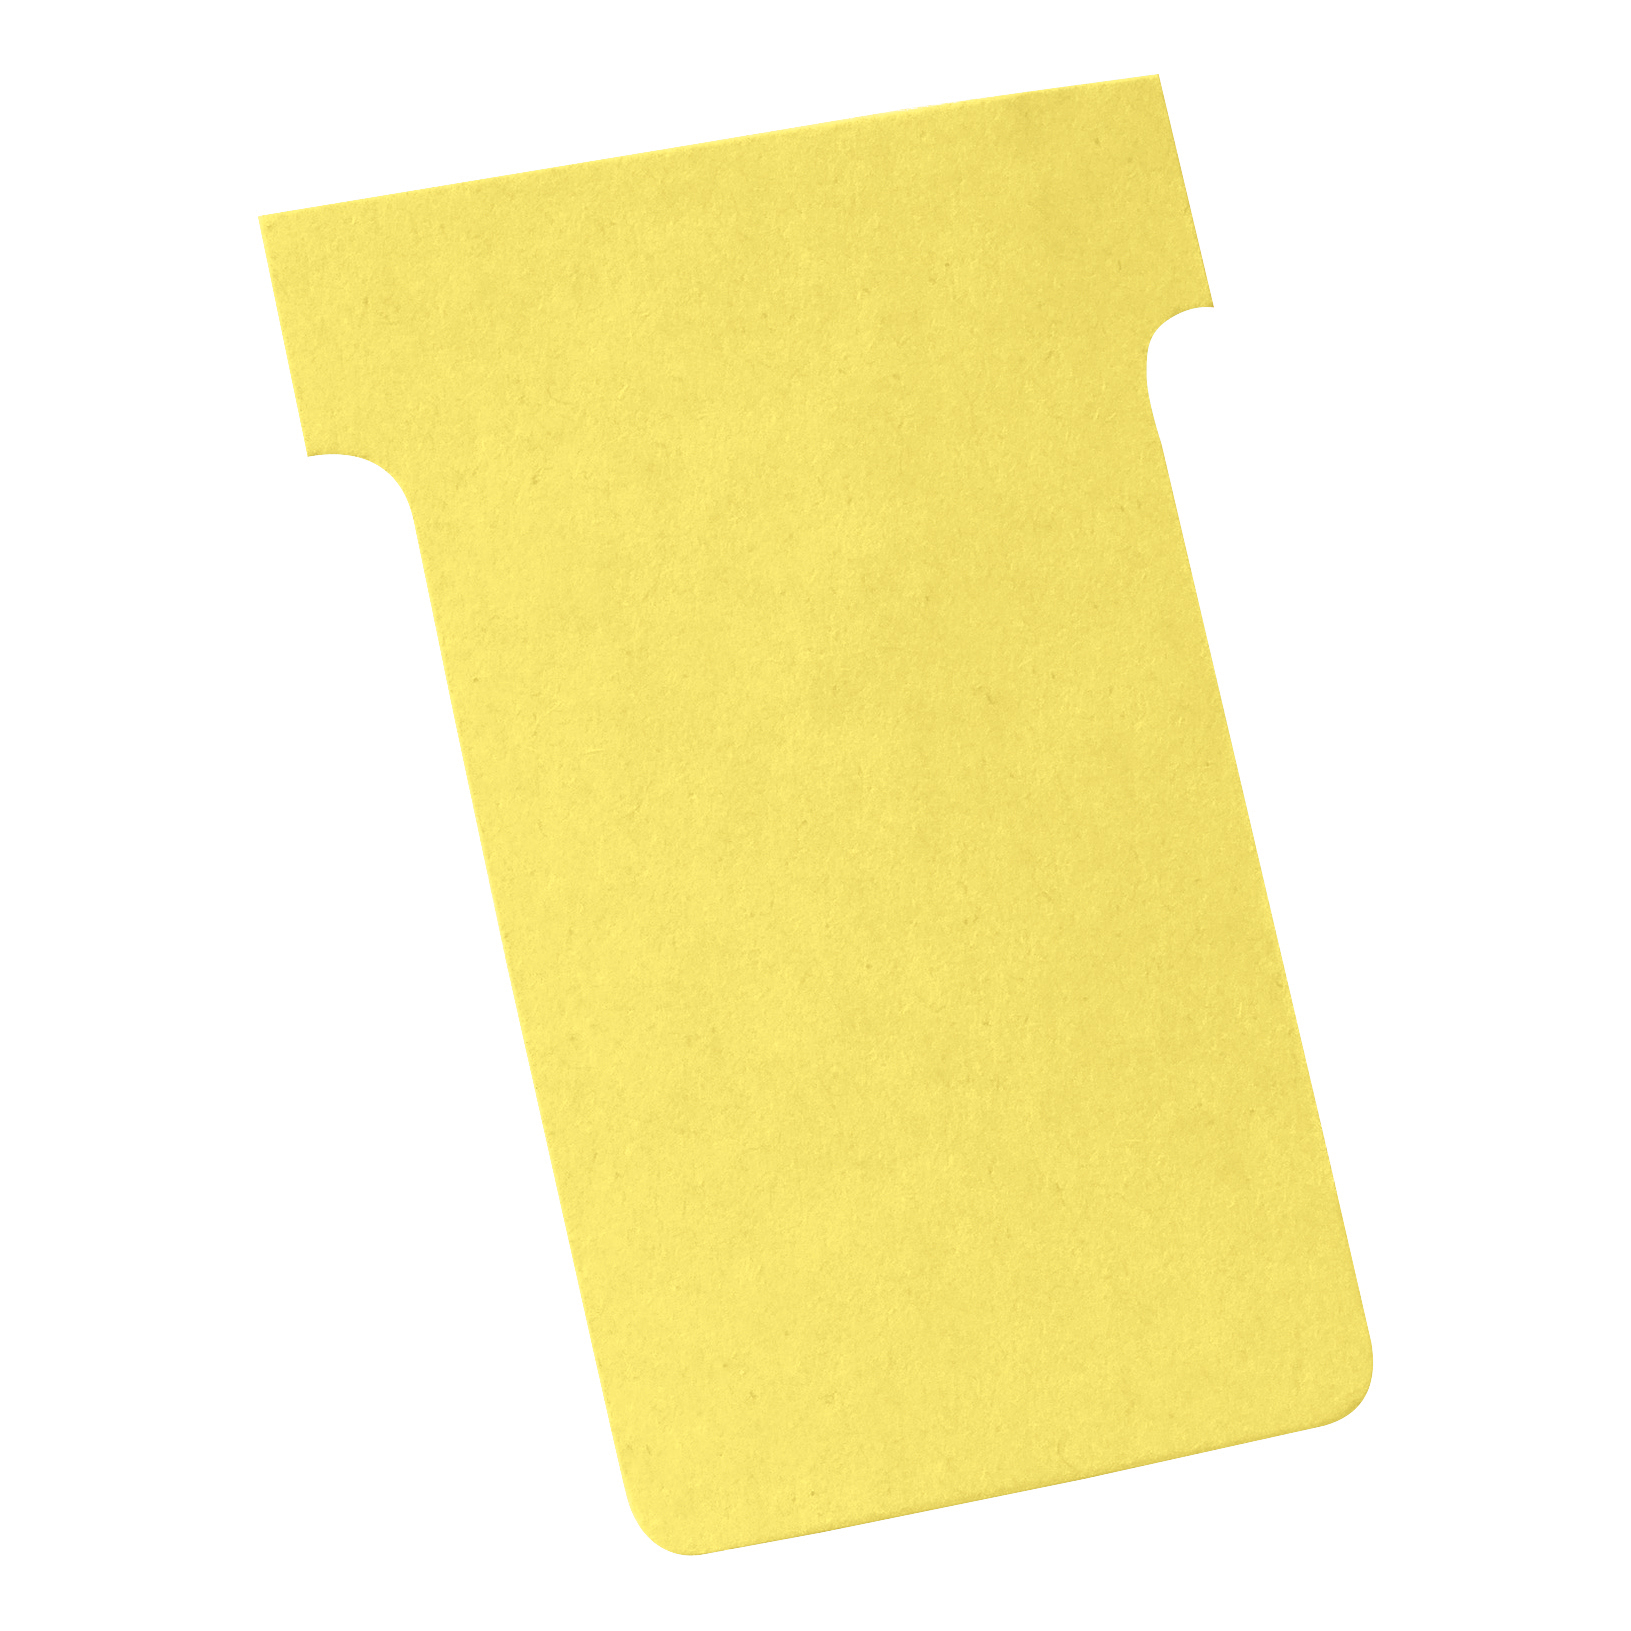 Nobo T-Cards 160gsm Tab Top 15mm W60x Bottom W48.5x Full H85mm Size 2 Yellow Ref 2002004 [Pack 100]